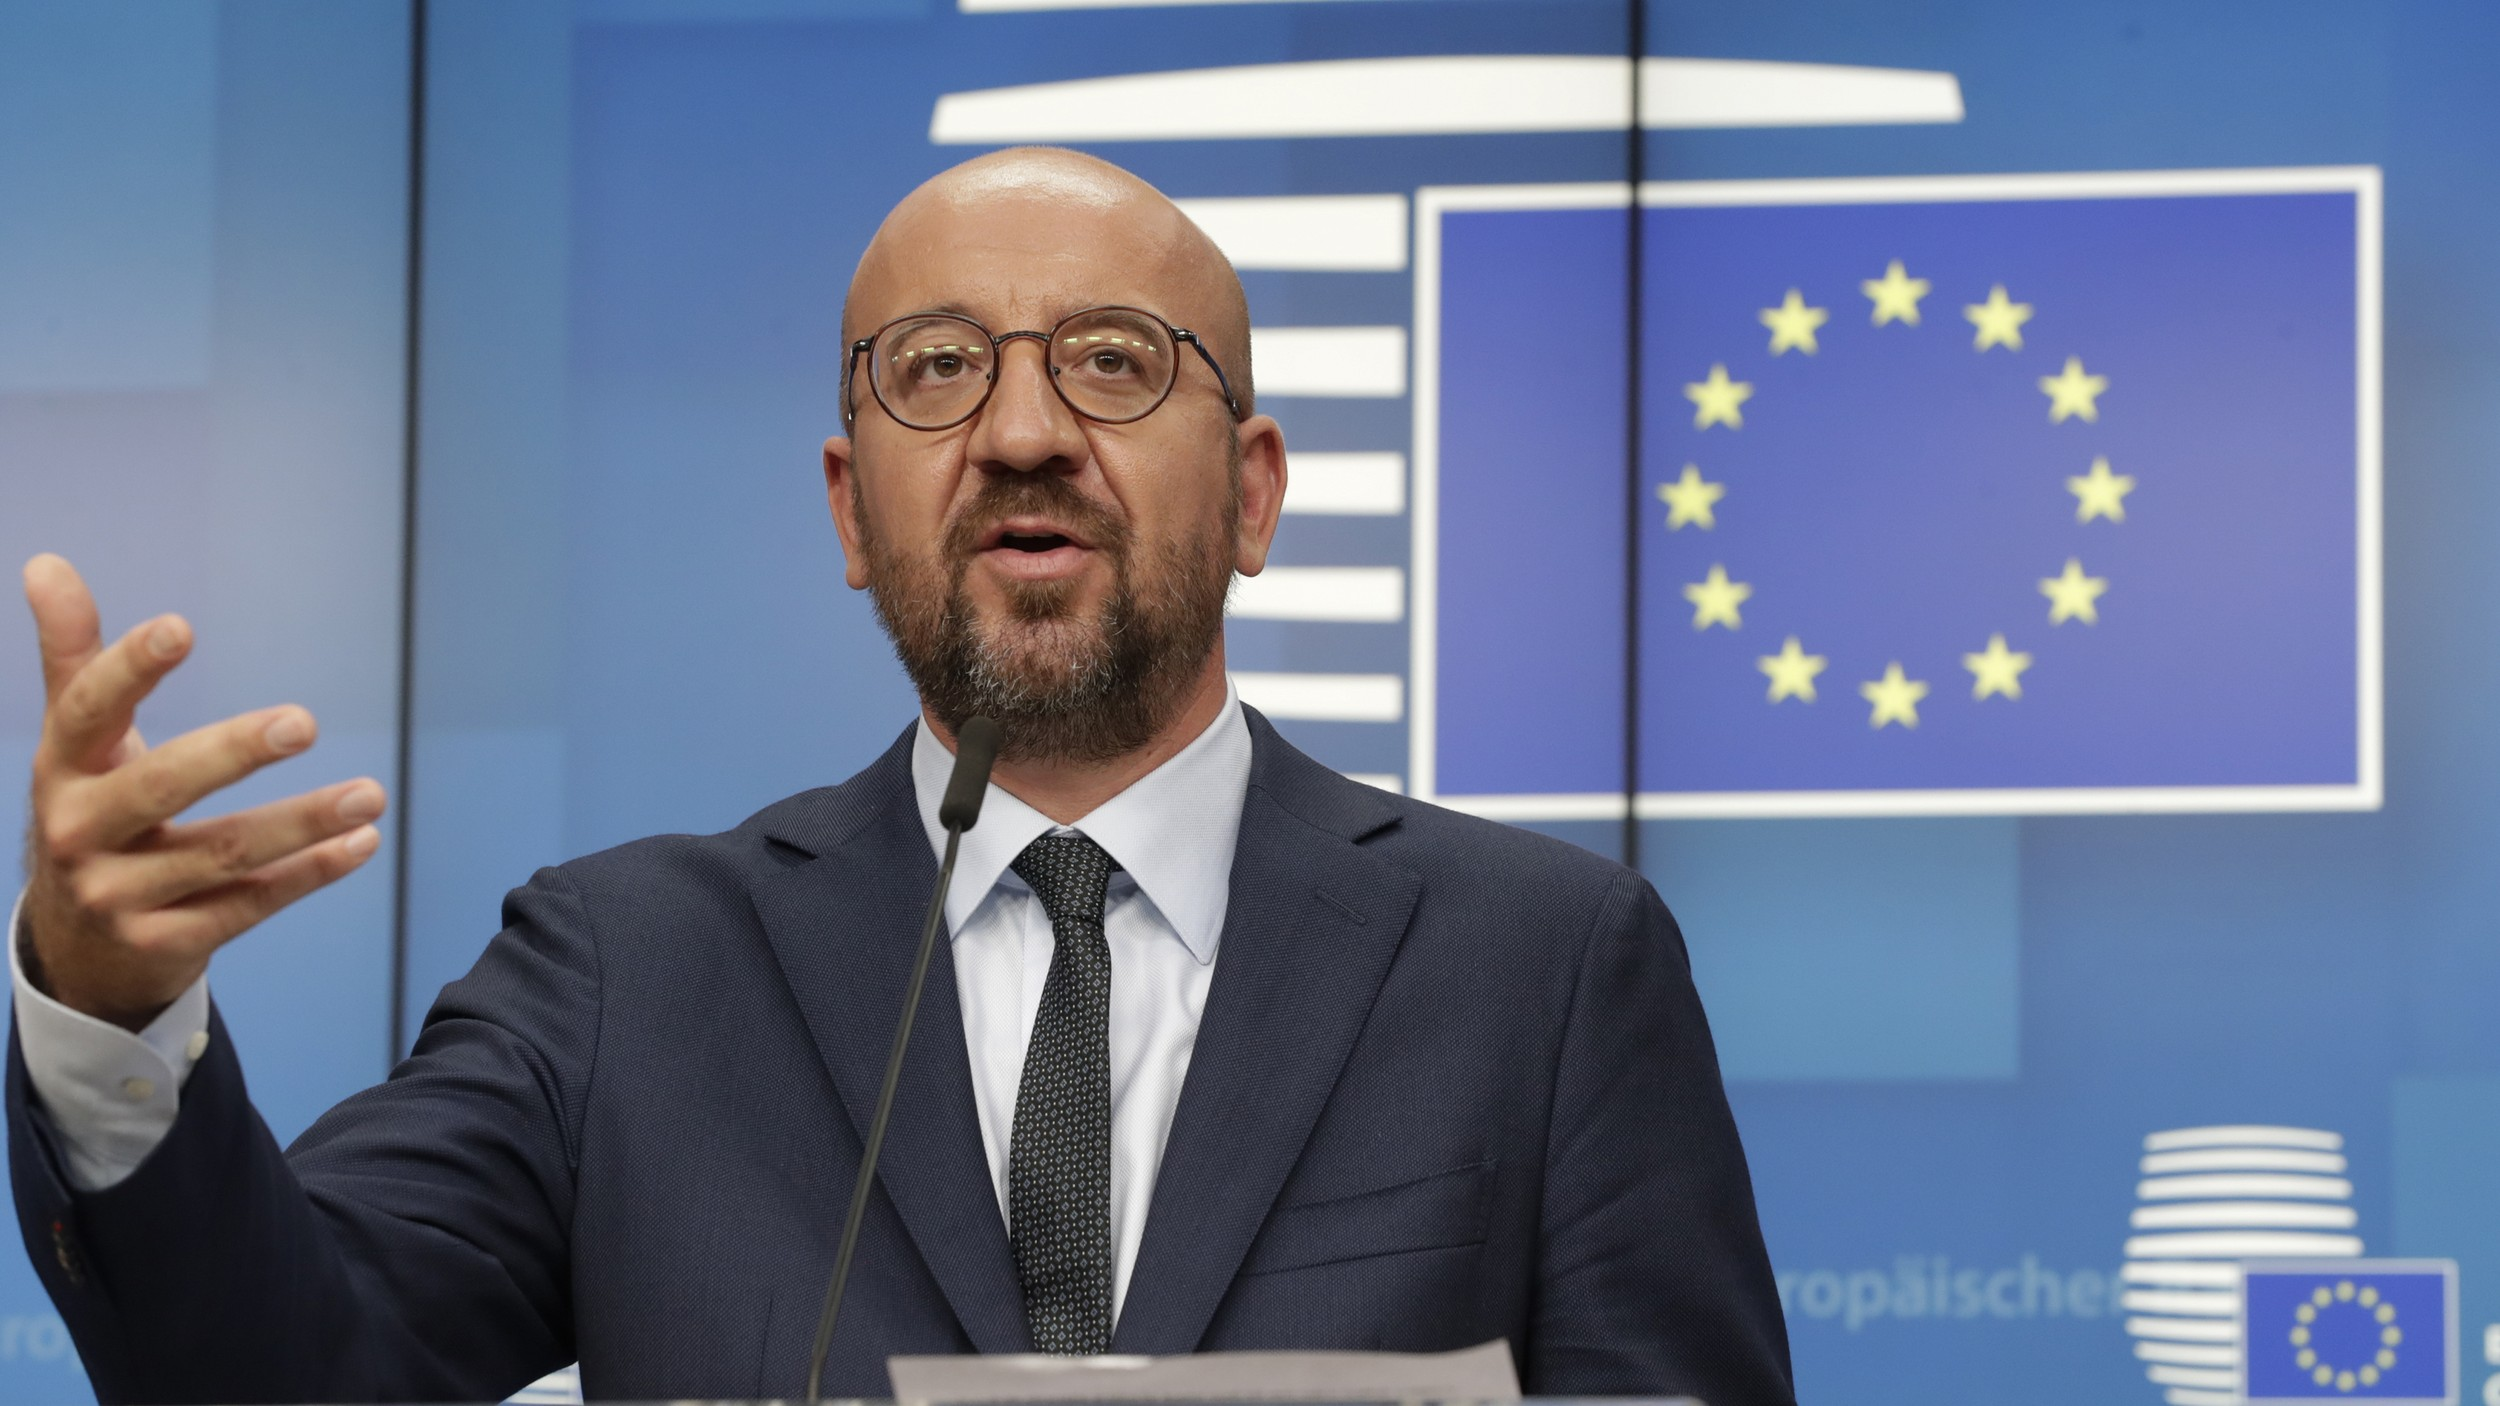 European Council President Charles Michel gestures as he addresses a press conference at the end of a European summit in Brussels, Aug. 19, 2020.